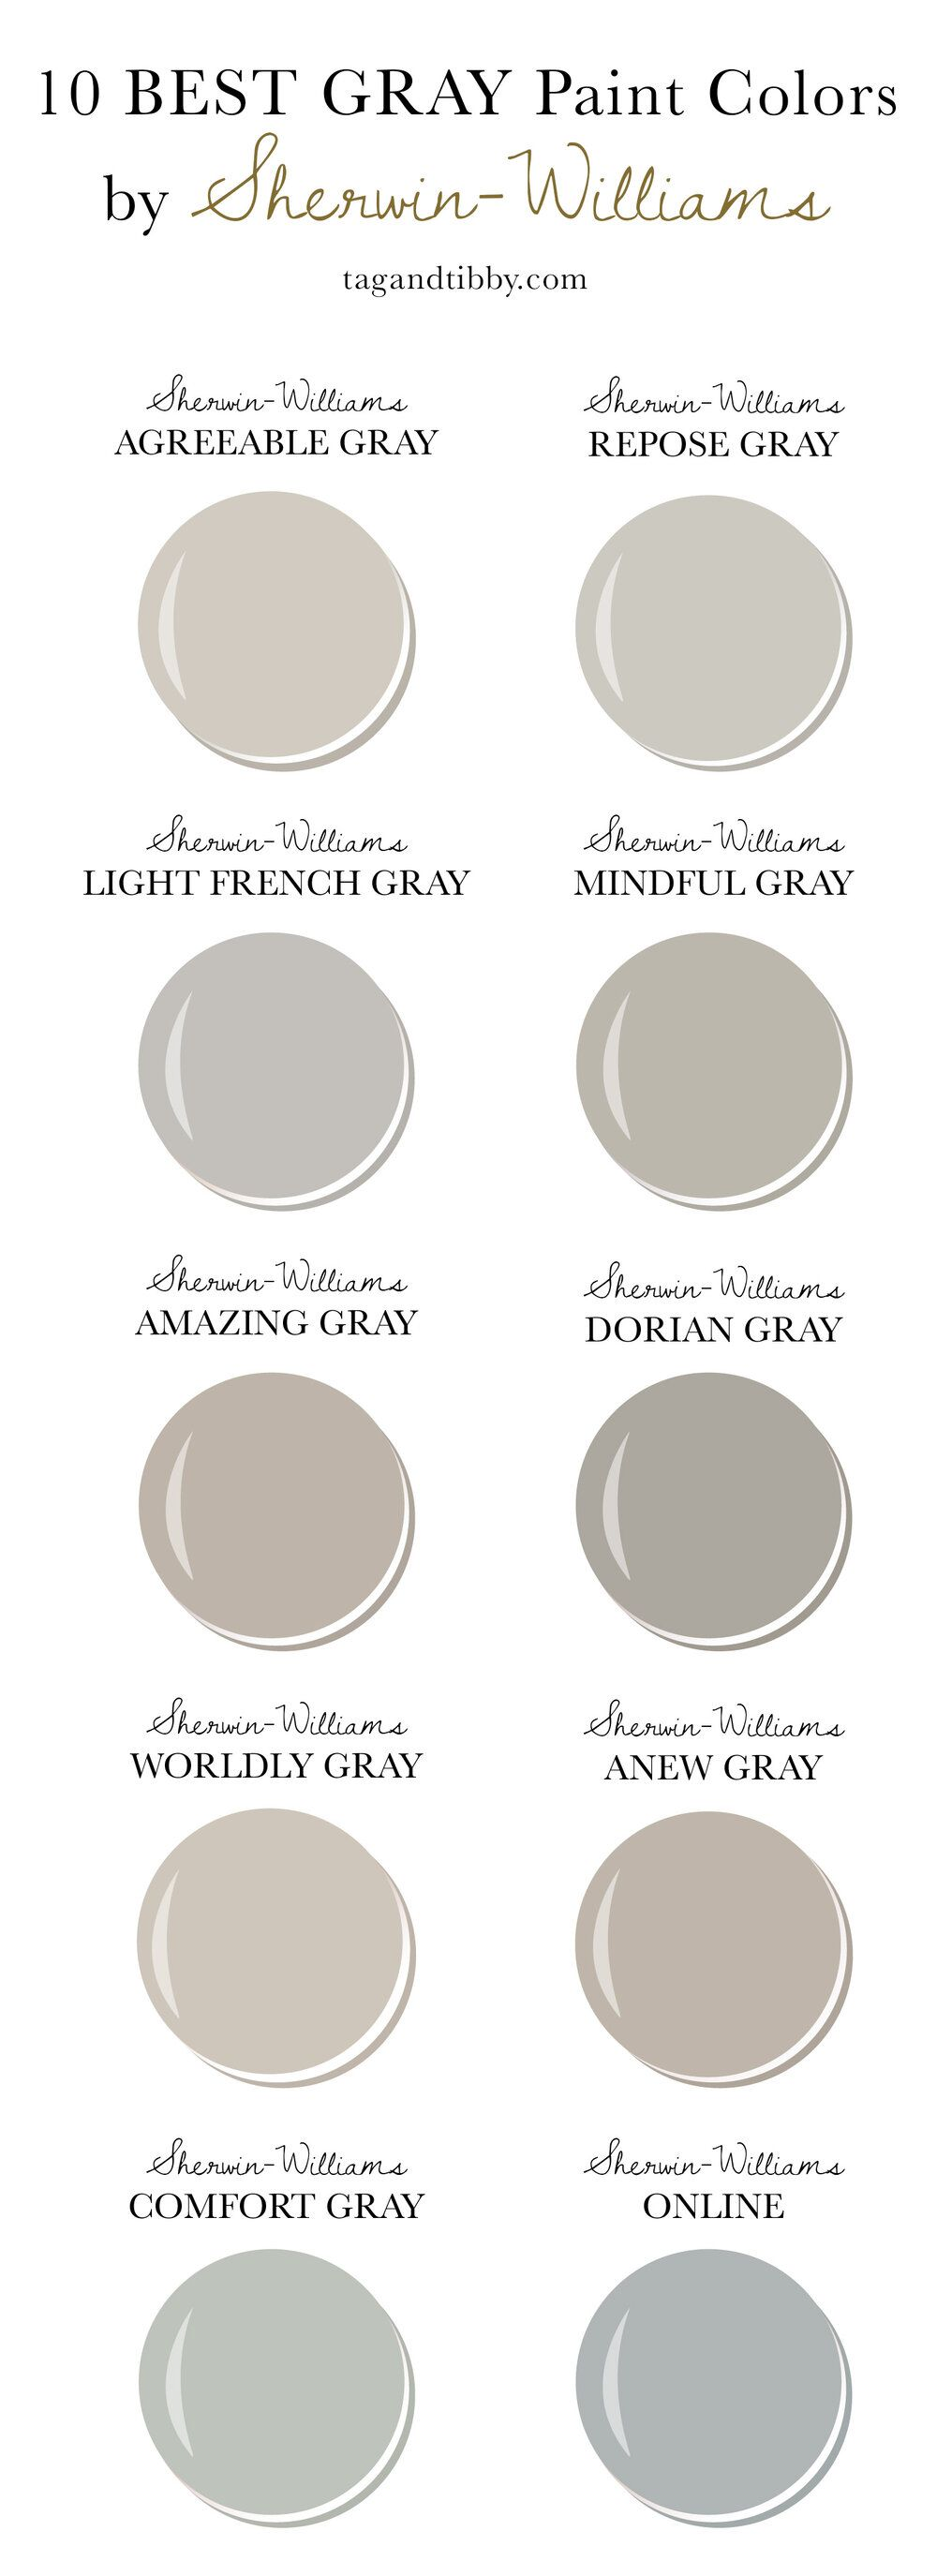 10 Best Gray Paint Colors by Sherwin-Williams in 2020 ...